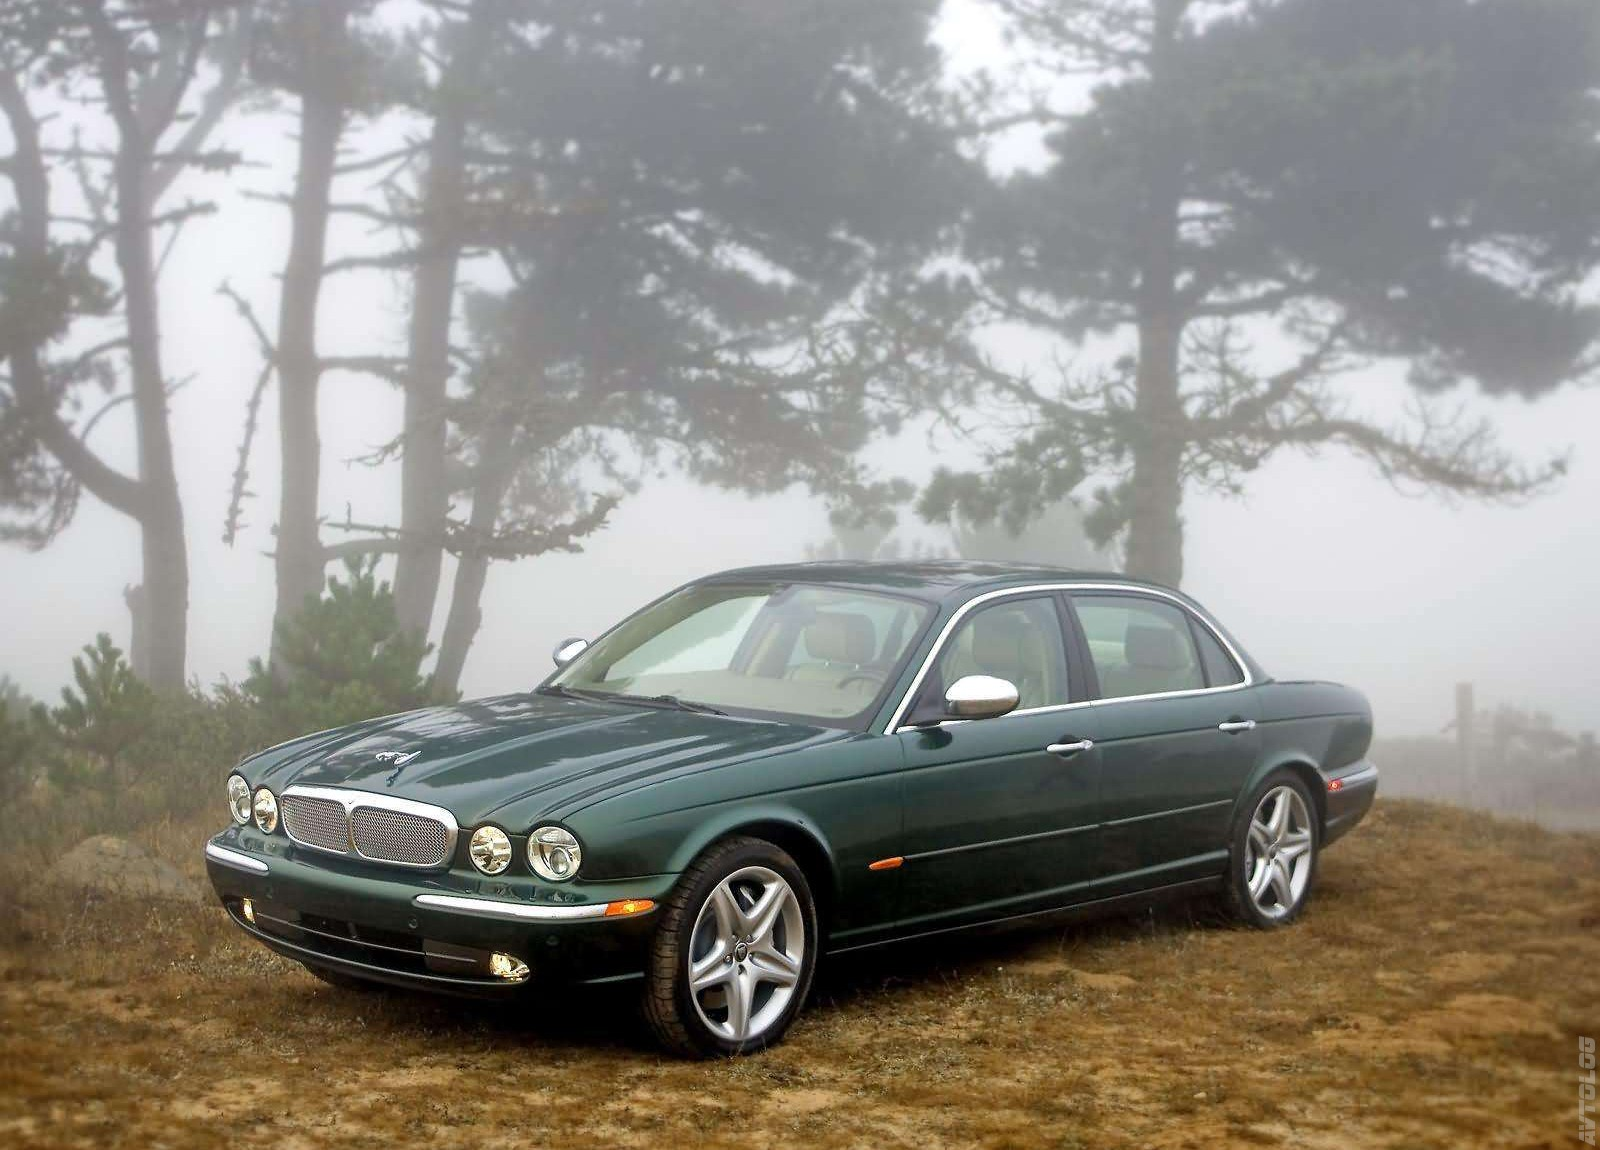 2019 Jaguar XJ Super V8 photo - 2